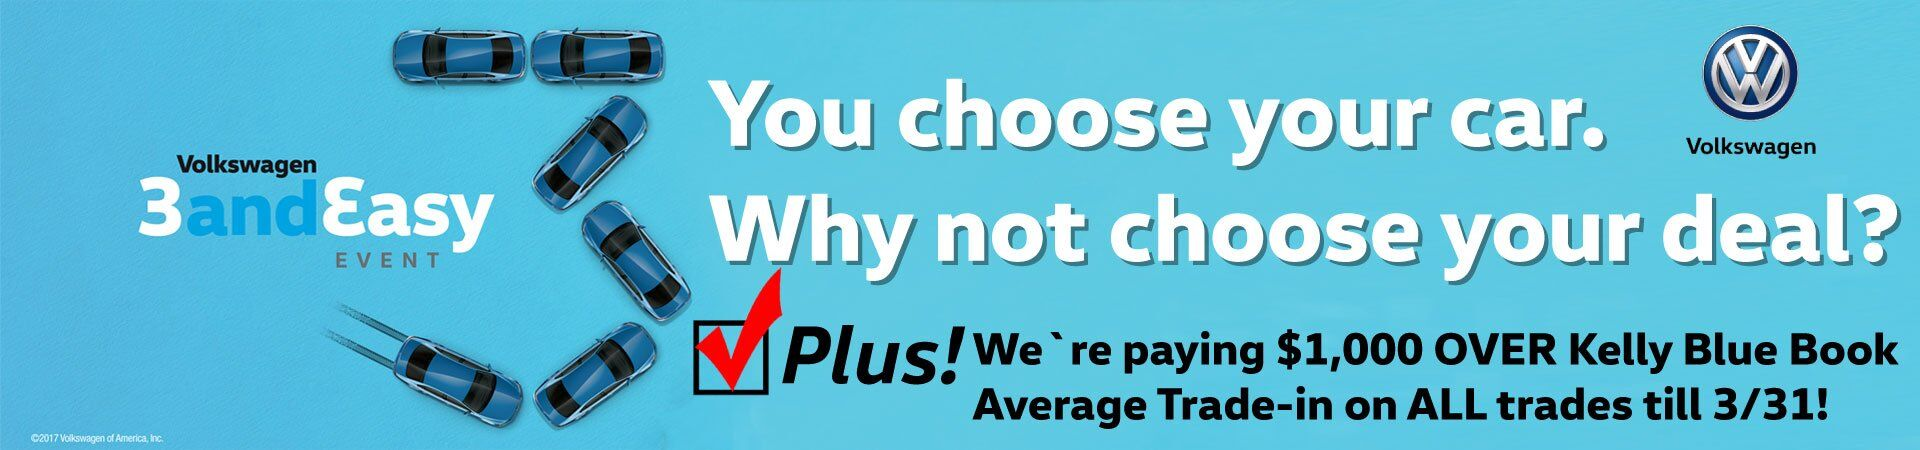 We`re paying $1,000 OVER Kelly Blue Book Average Trade-in till 3/31!